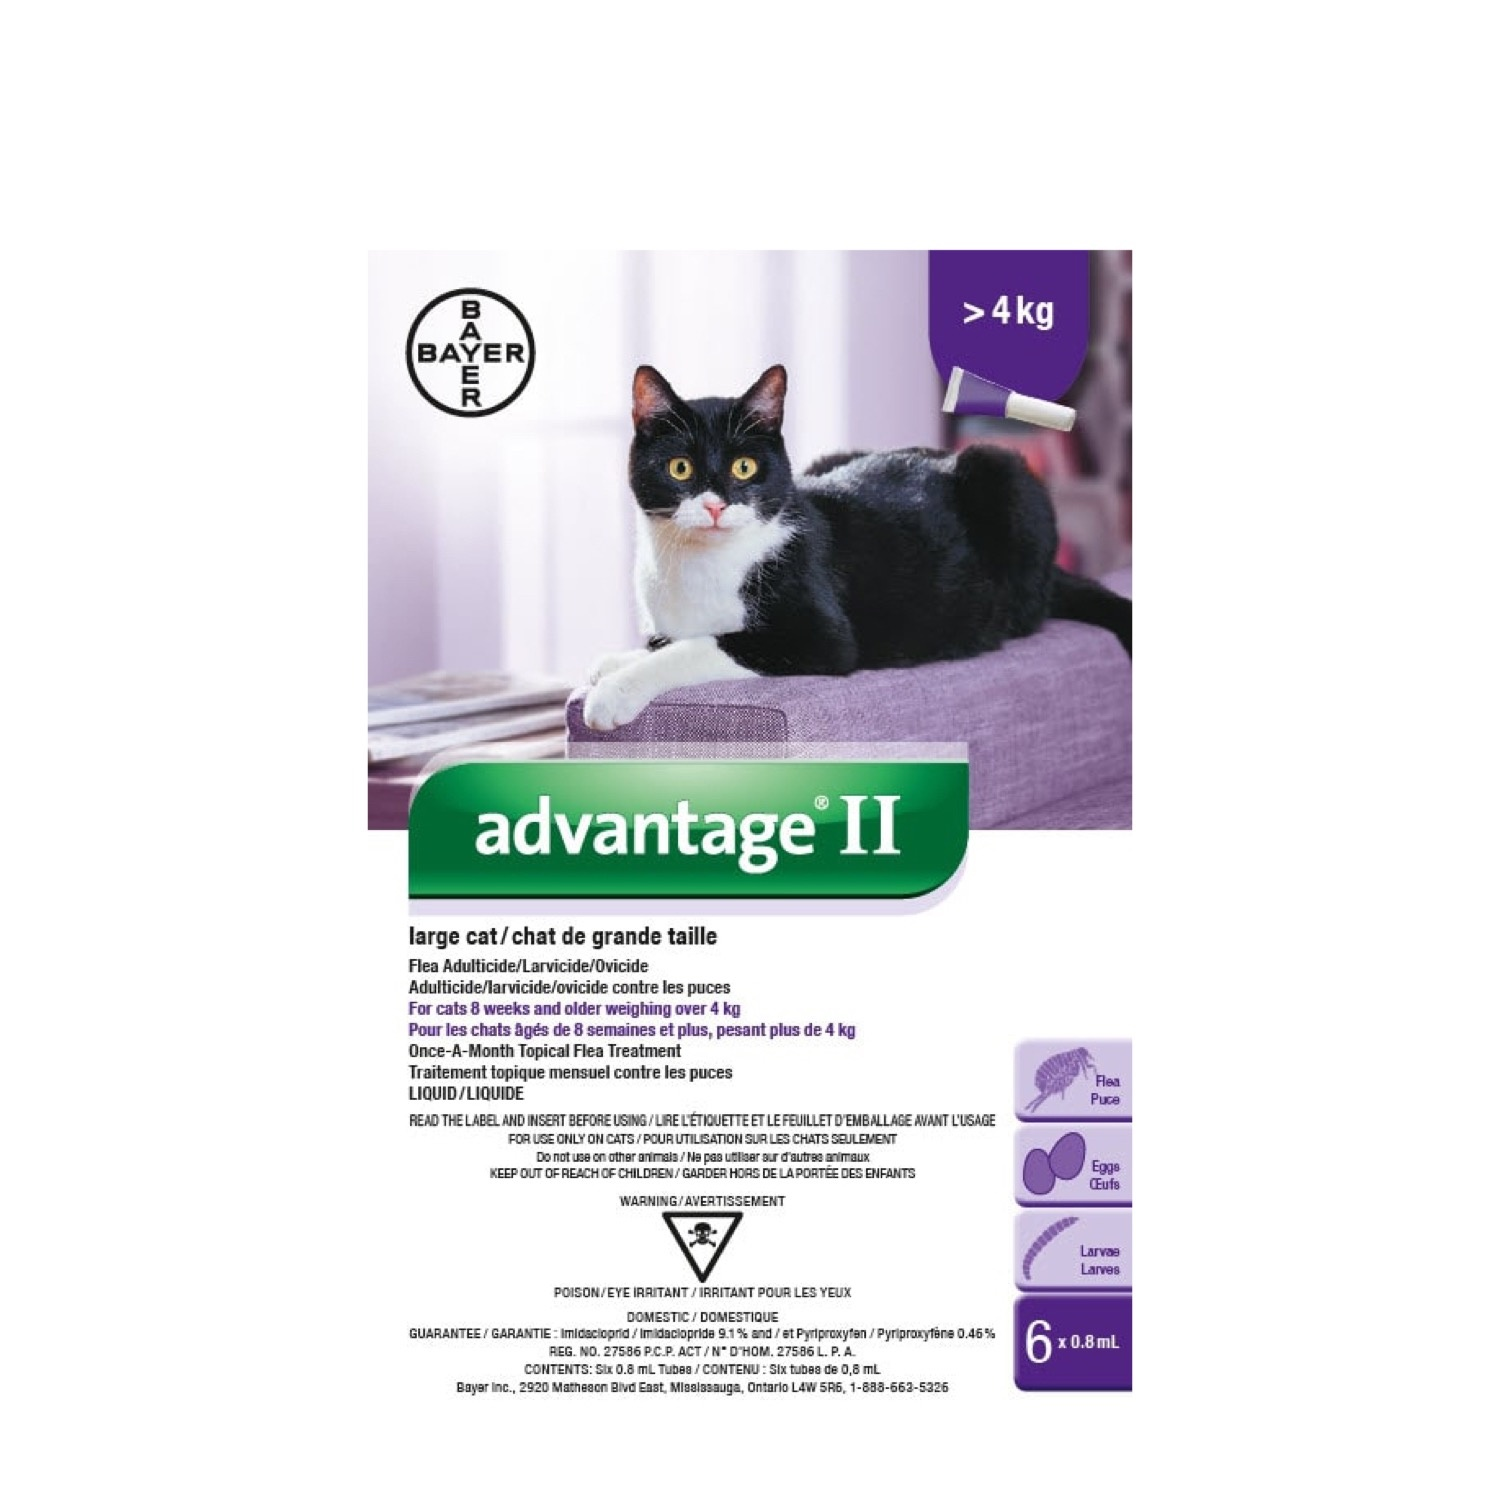 Bayer Bayer Advantage II Large Cat Over 4kg